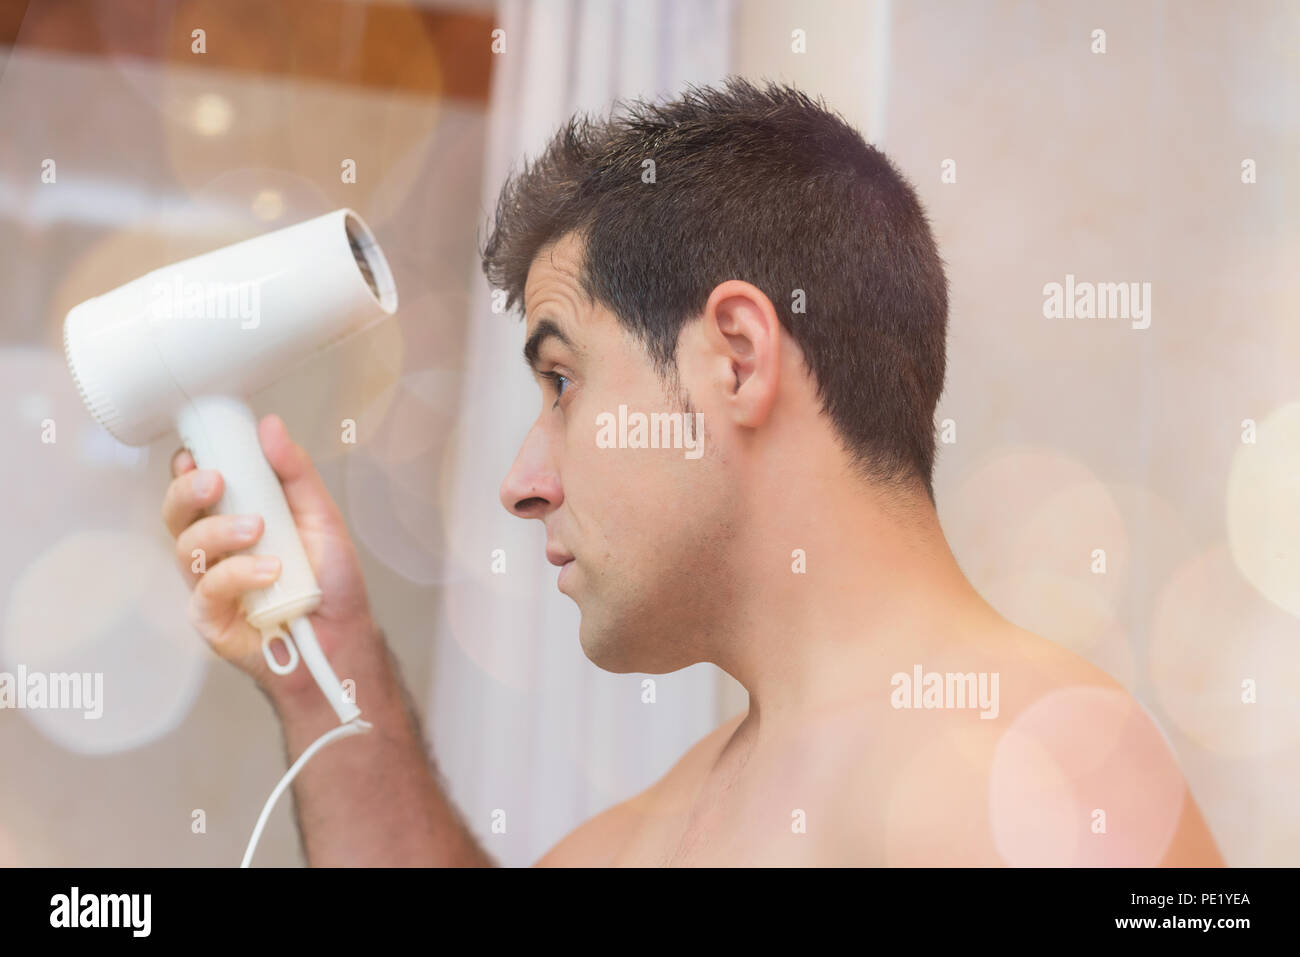 Handsome man drying his hair with a hair dryer. Concept beauty and care of man - Stock Image